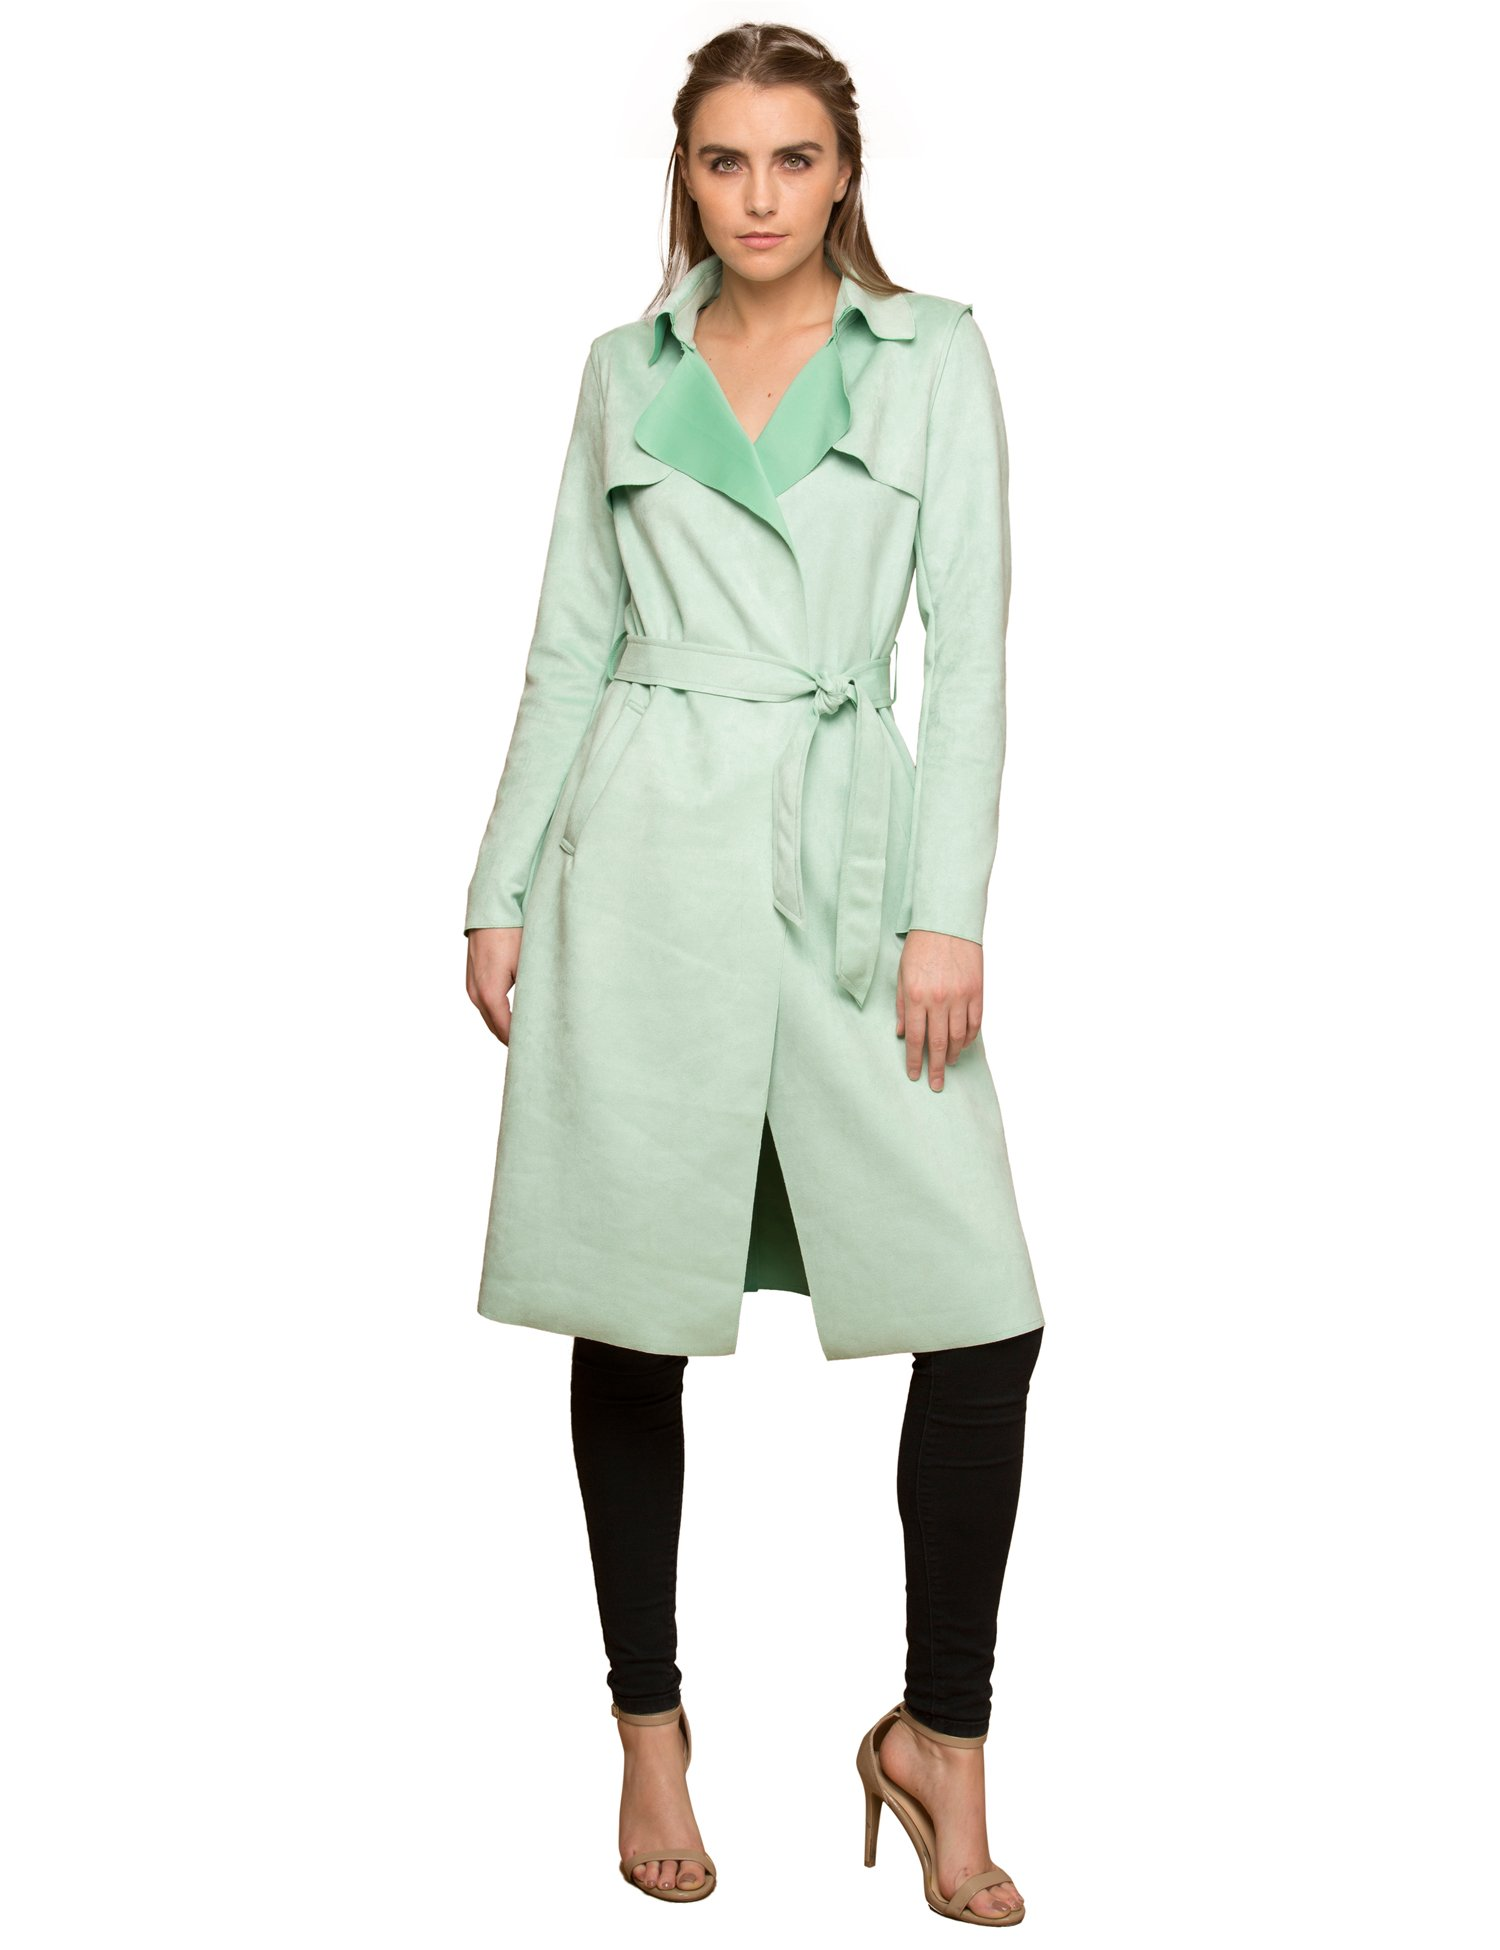 Lock and Love WJC1613 Womens Suede Coats Long Duster Jacket Trench Coat with Belt L Mint